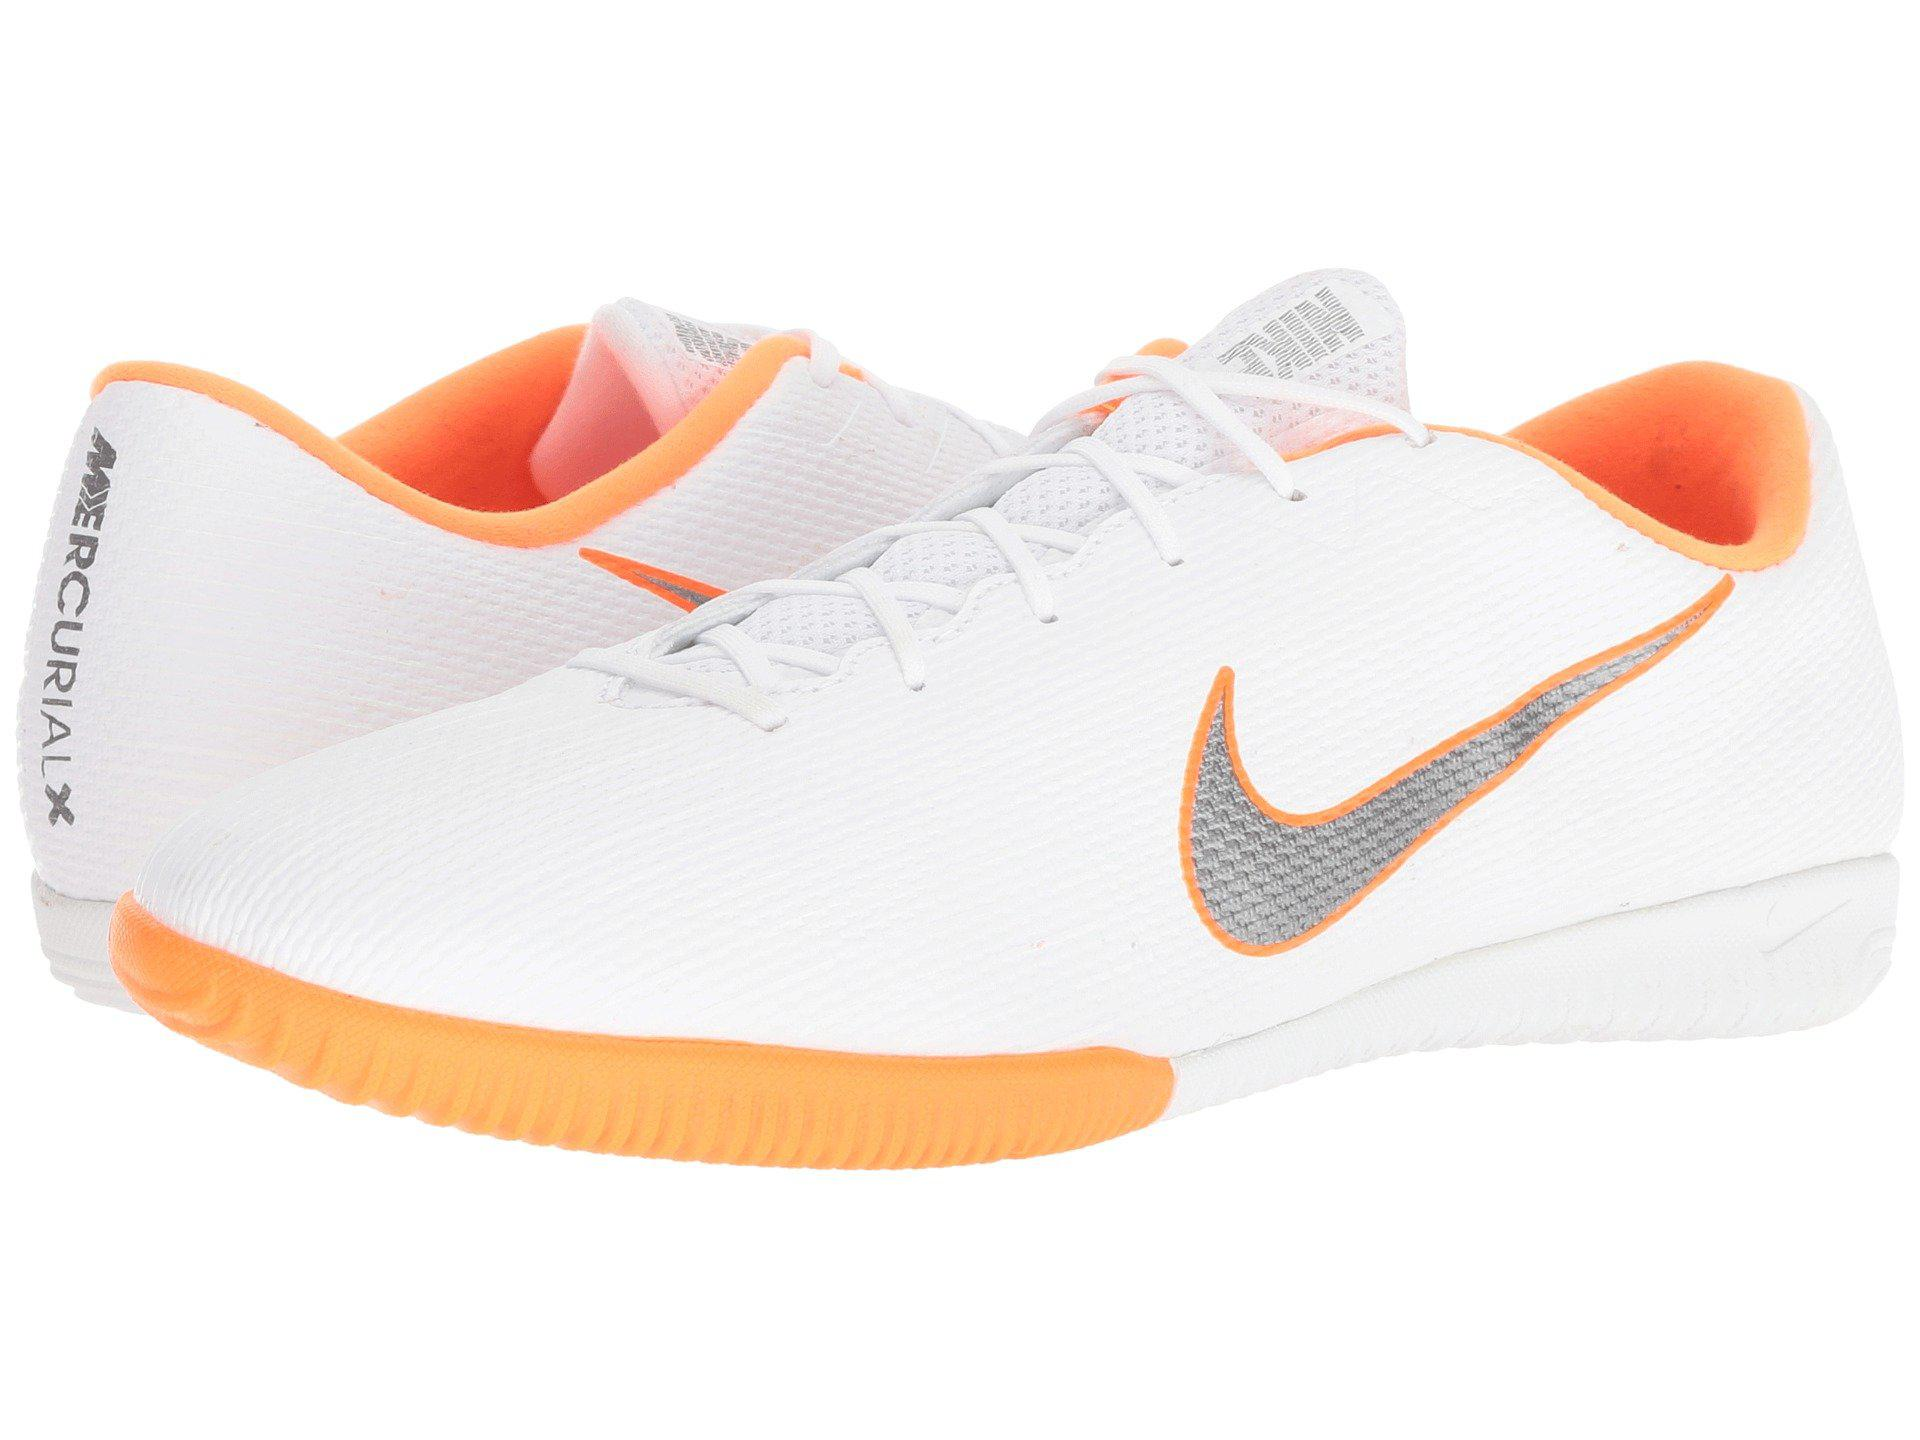 cheap for discount e3cc6 21e0d Lyst - Nike Vaporx 12 Academy Ic in White for Men